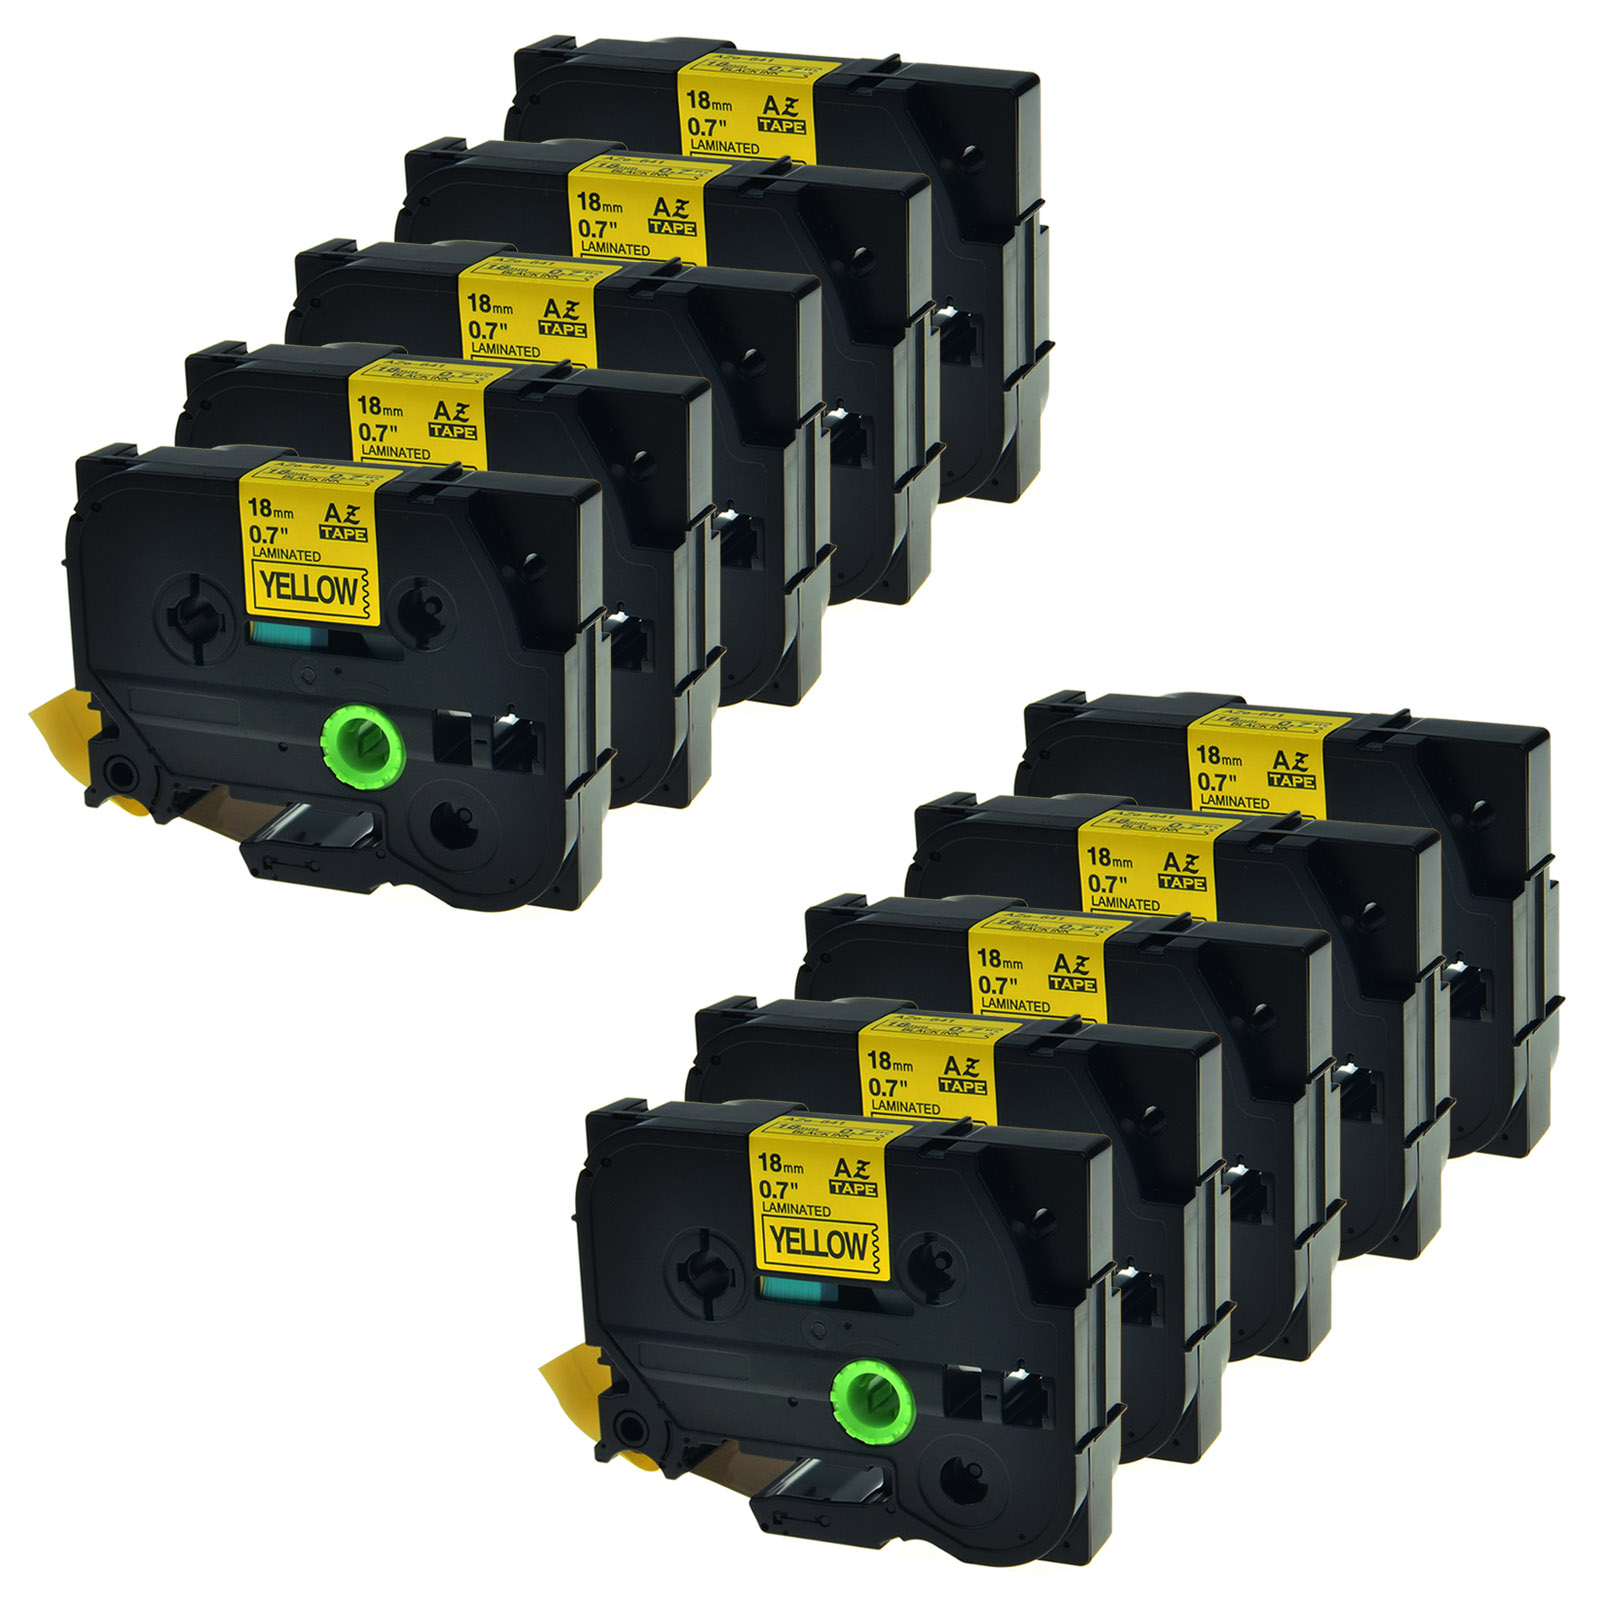 10PK TZe641 TZ641 Black On Yellow Label Tape For Brother P-Touch PT-170 18mm